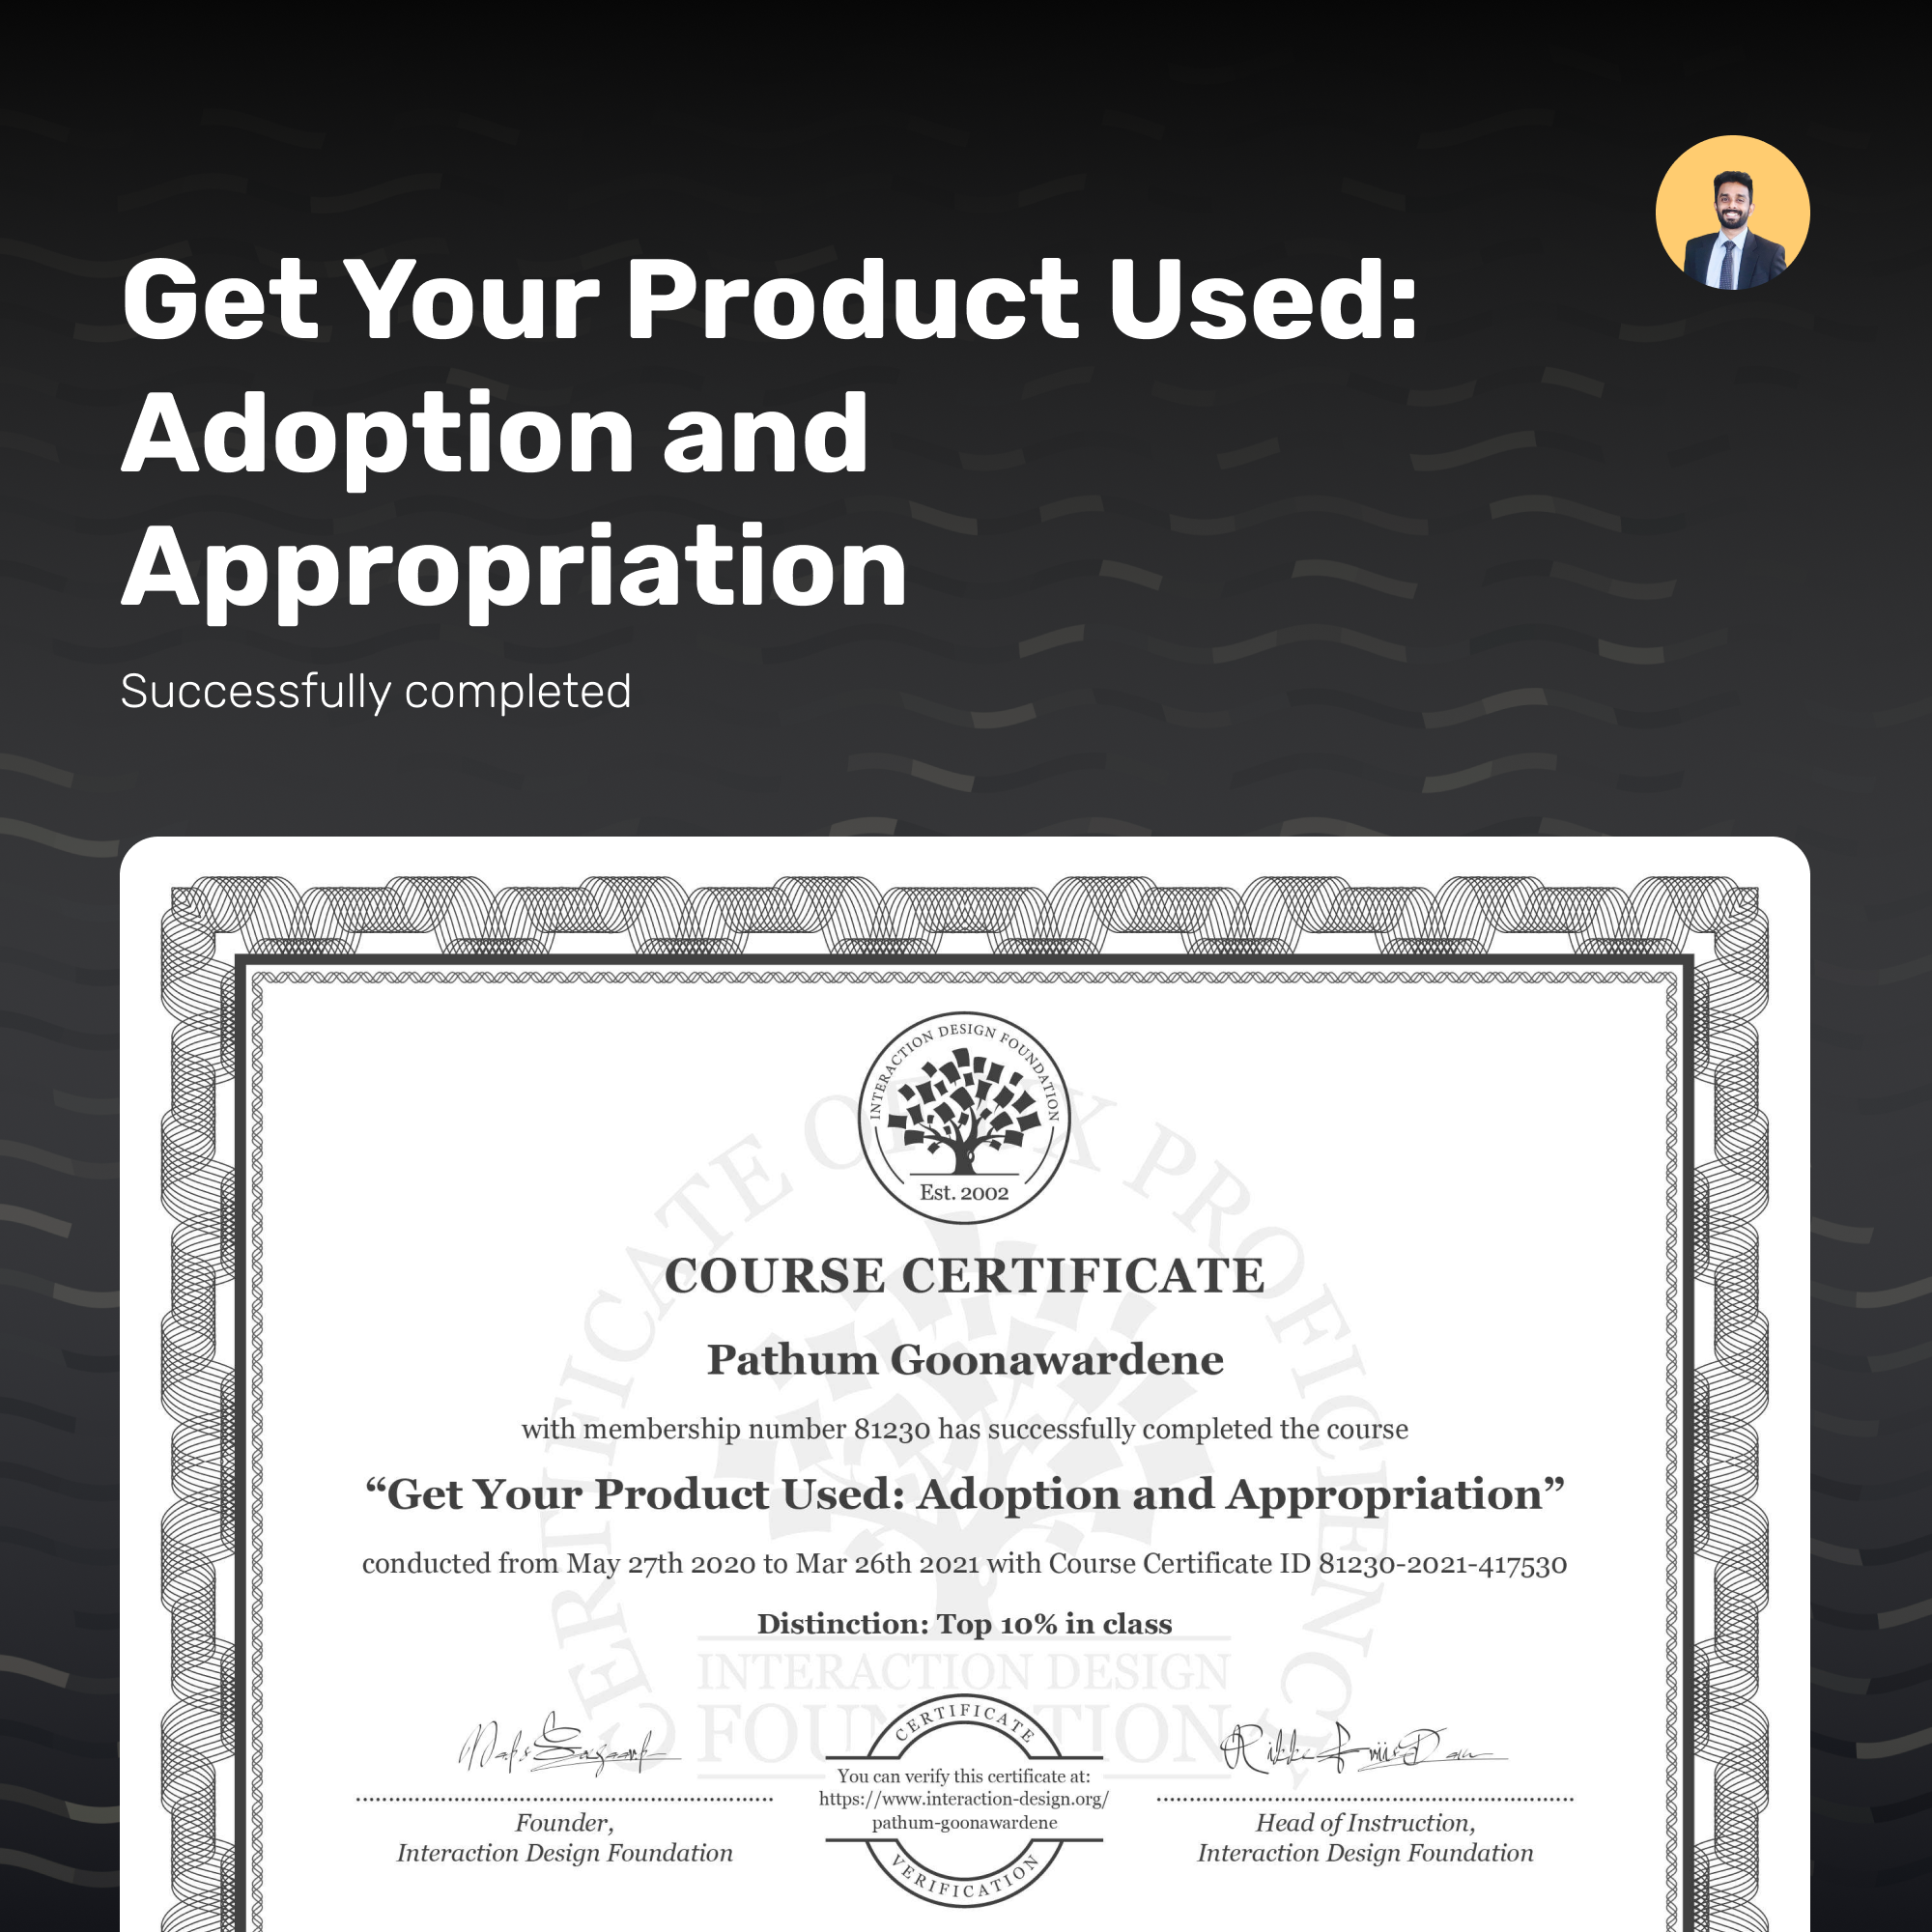 Get Your Product Used: Adoption and Appropriation